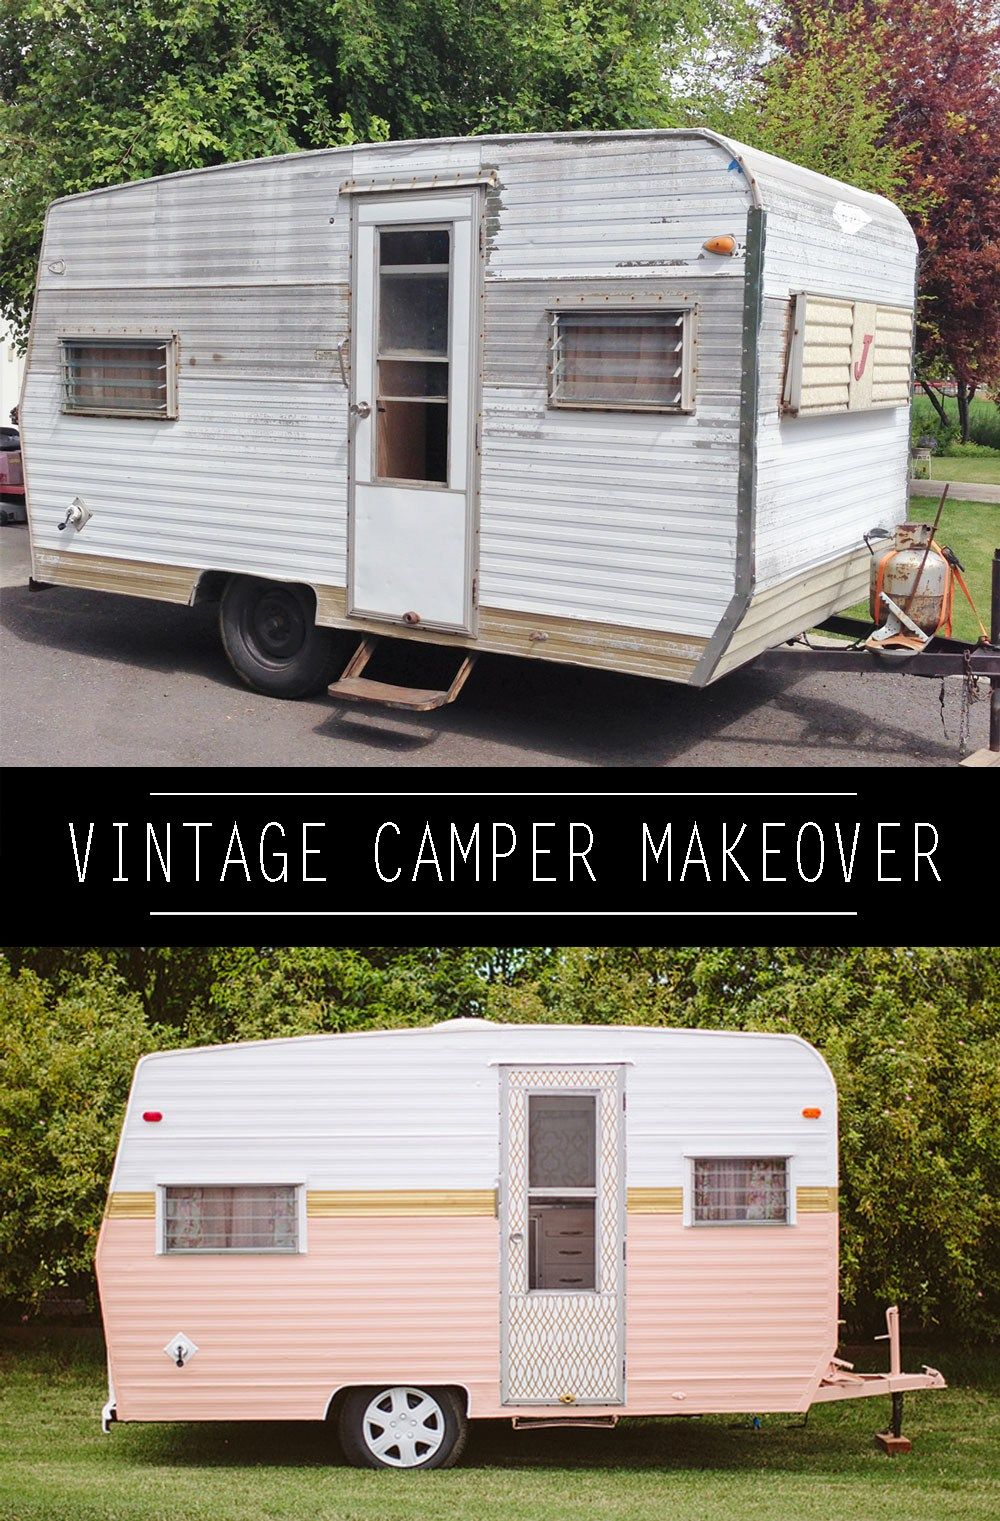 How To Paint A Vintage Camper Vintage Campers Trailers